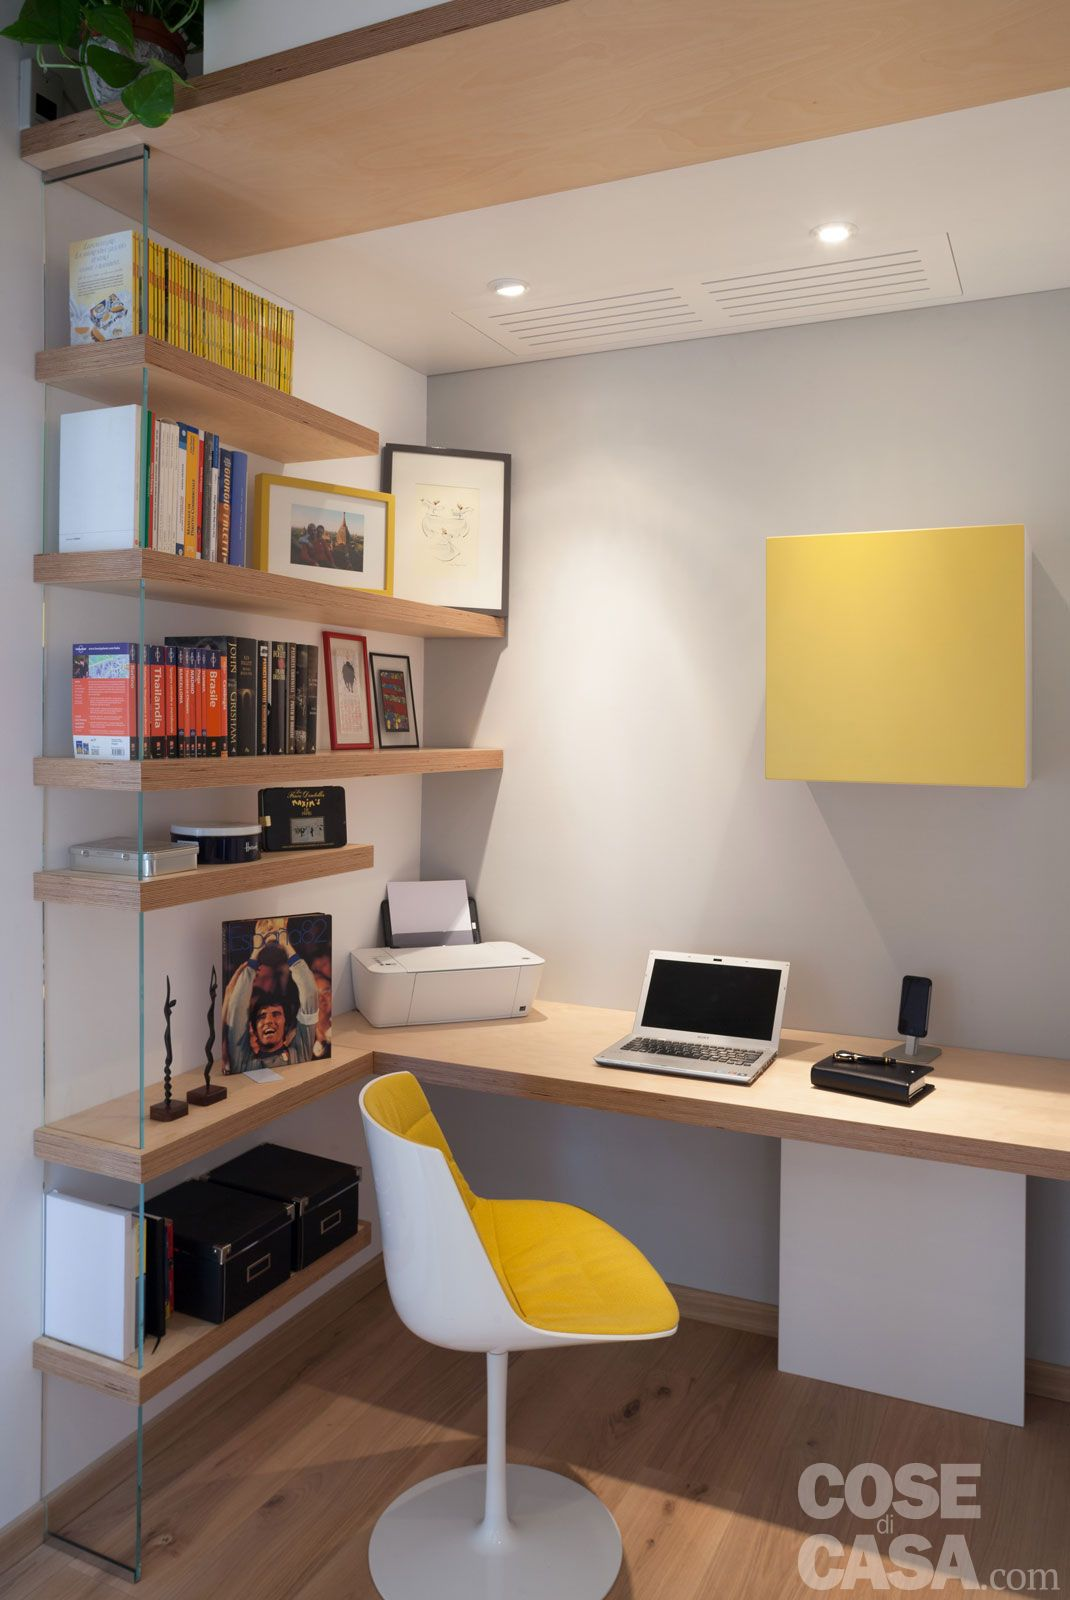 11 Brilliant And Simple Study Table Ideas Collection | Home Decor Ideas |  Pinterest | Craft storage cabinets, Study room design and Study rooms